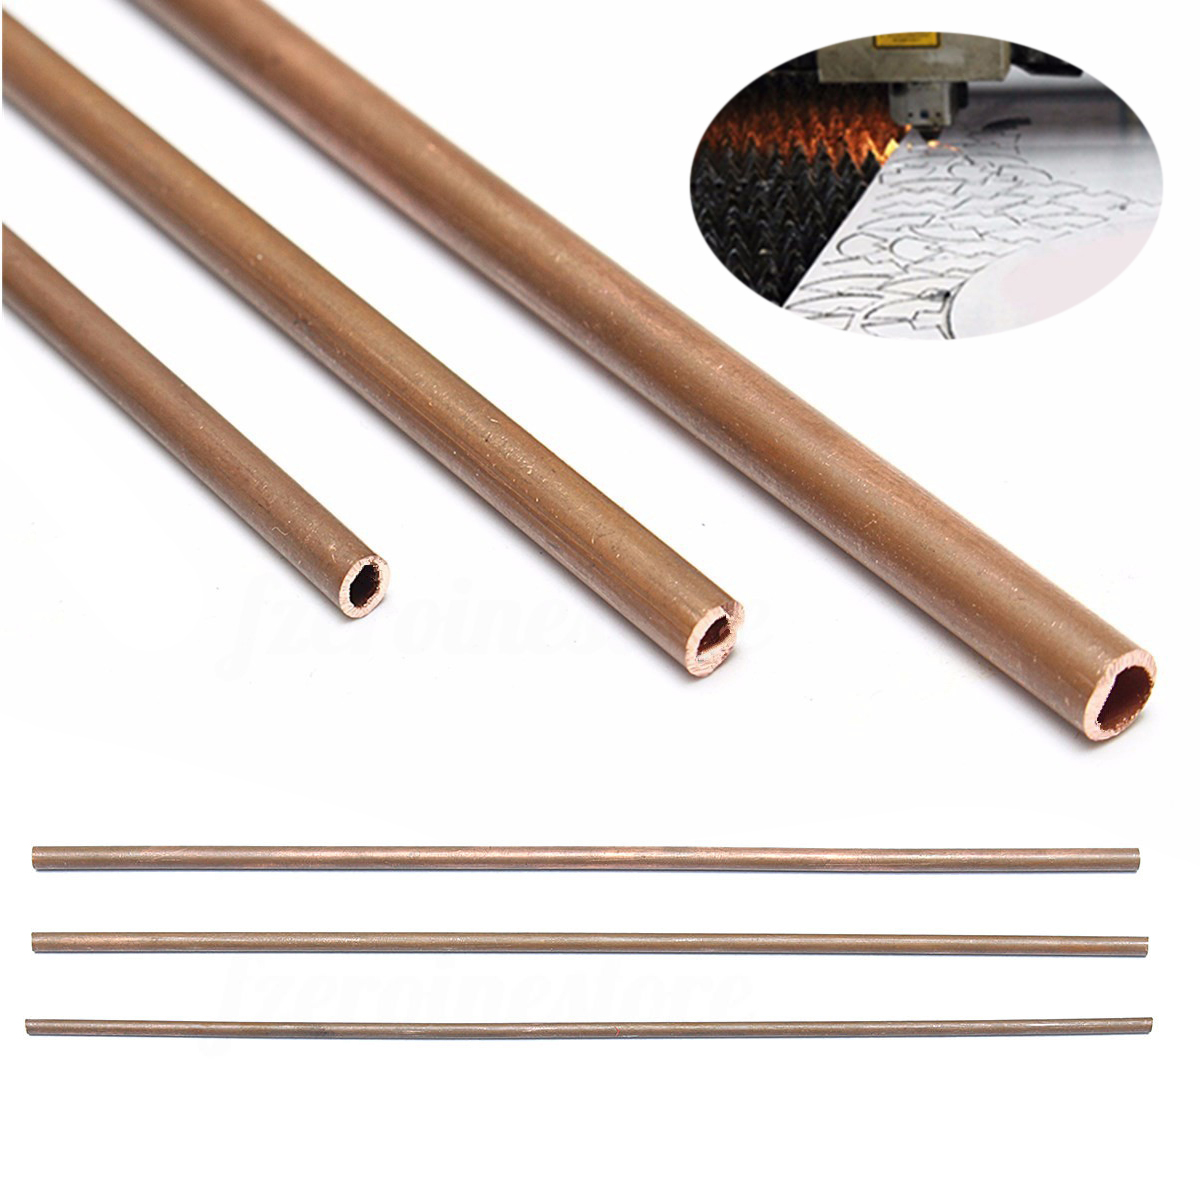 High Quality Copper Tube Plumbing Pipe/Tube DIY Rod 3mm - 5mm Inner Diameter 300mm Length 1pc pack k795 aluminum pipe out diameter 8mm inner diameter 5mm hollow circular tube for diy model making free shipping russia